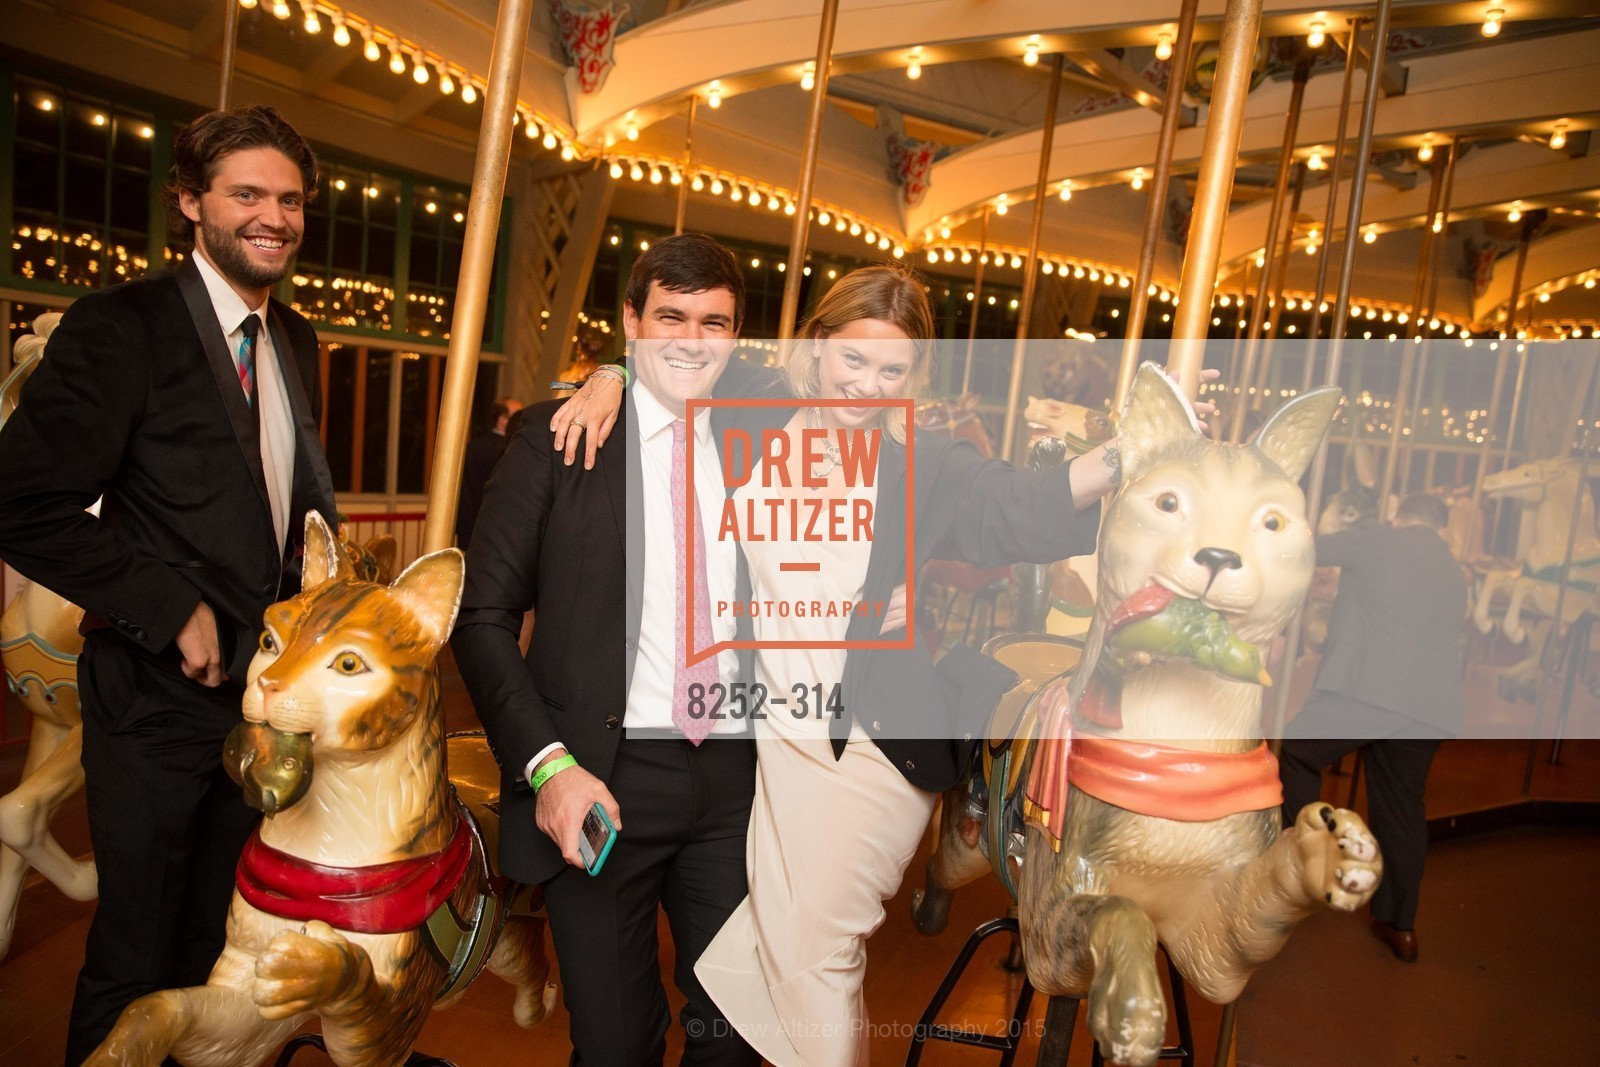 Todd Hartman, John O'Connor, Natalia Mitchell, San Francisco Zoo Fur Ball, San Francisco Zoo, September 25th, 2015,Drew Altizer, Drew Altizer Photography, full-service agency, private events, San Francisco photographer, photographer california